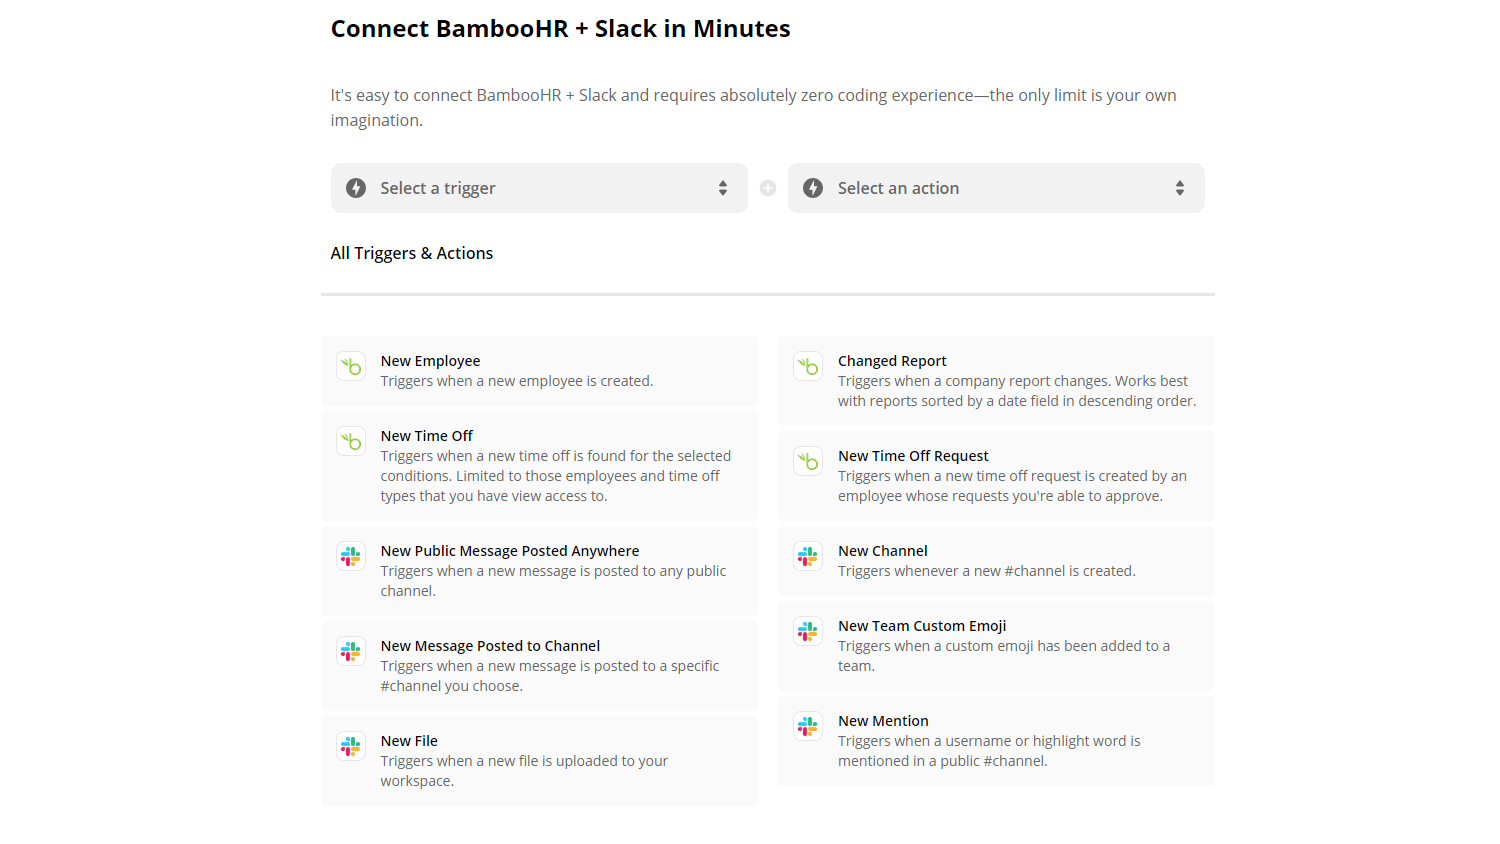 Connect BambooHR and Slack in Minutes